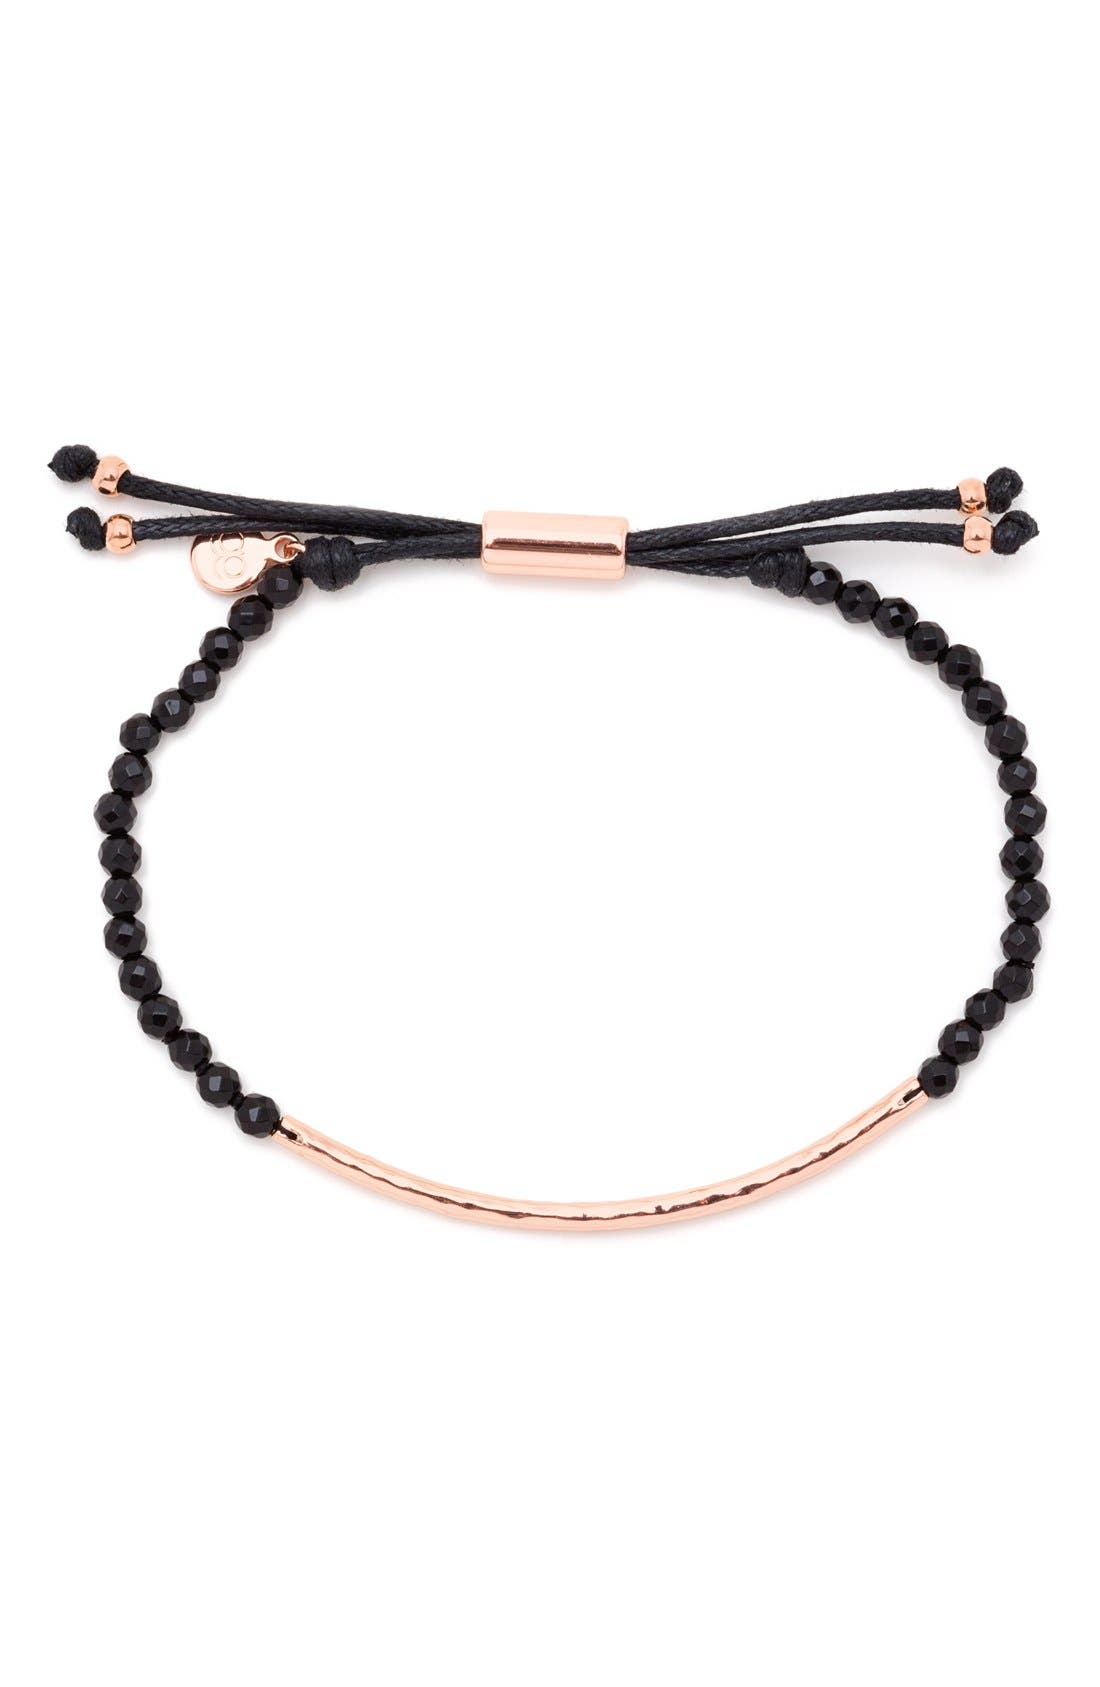 GORJANA,                             Power Gemstone Beaded Bracelet,                             Alternate thumbnail 2, color,                             PROTECTION/ BLACK/ ROSE GOLD